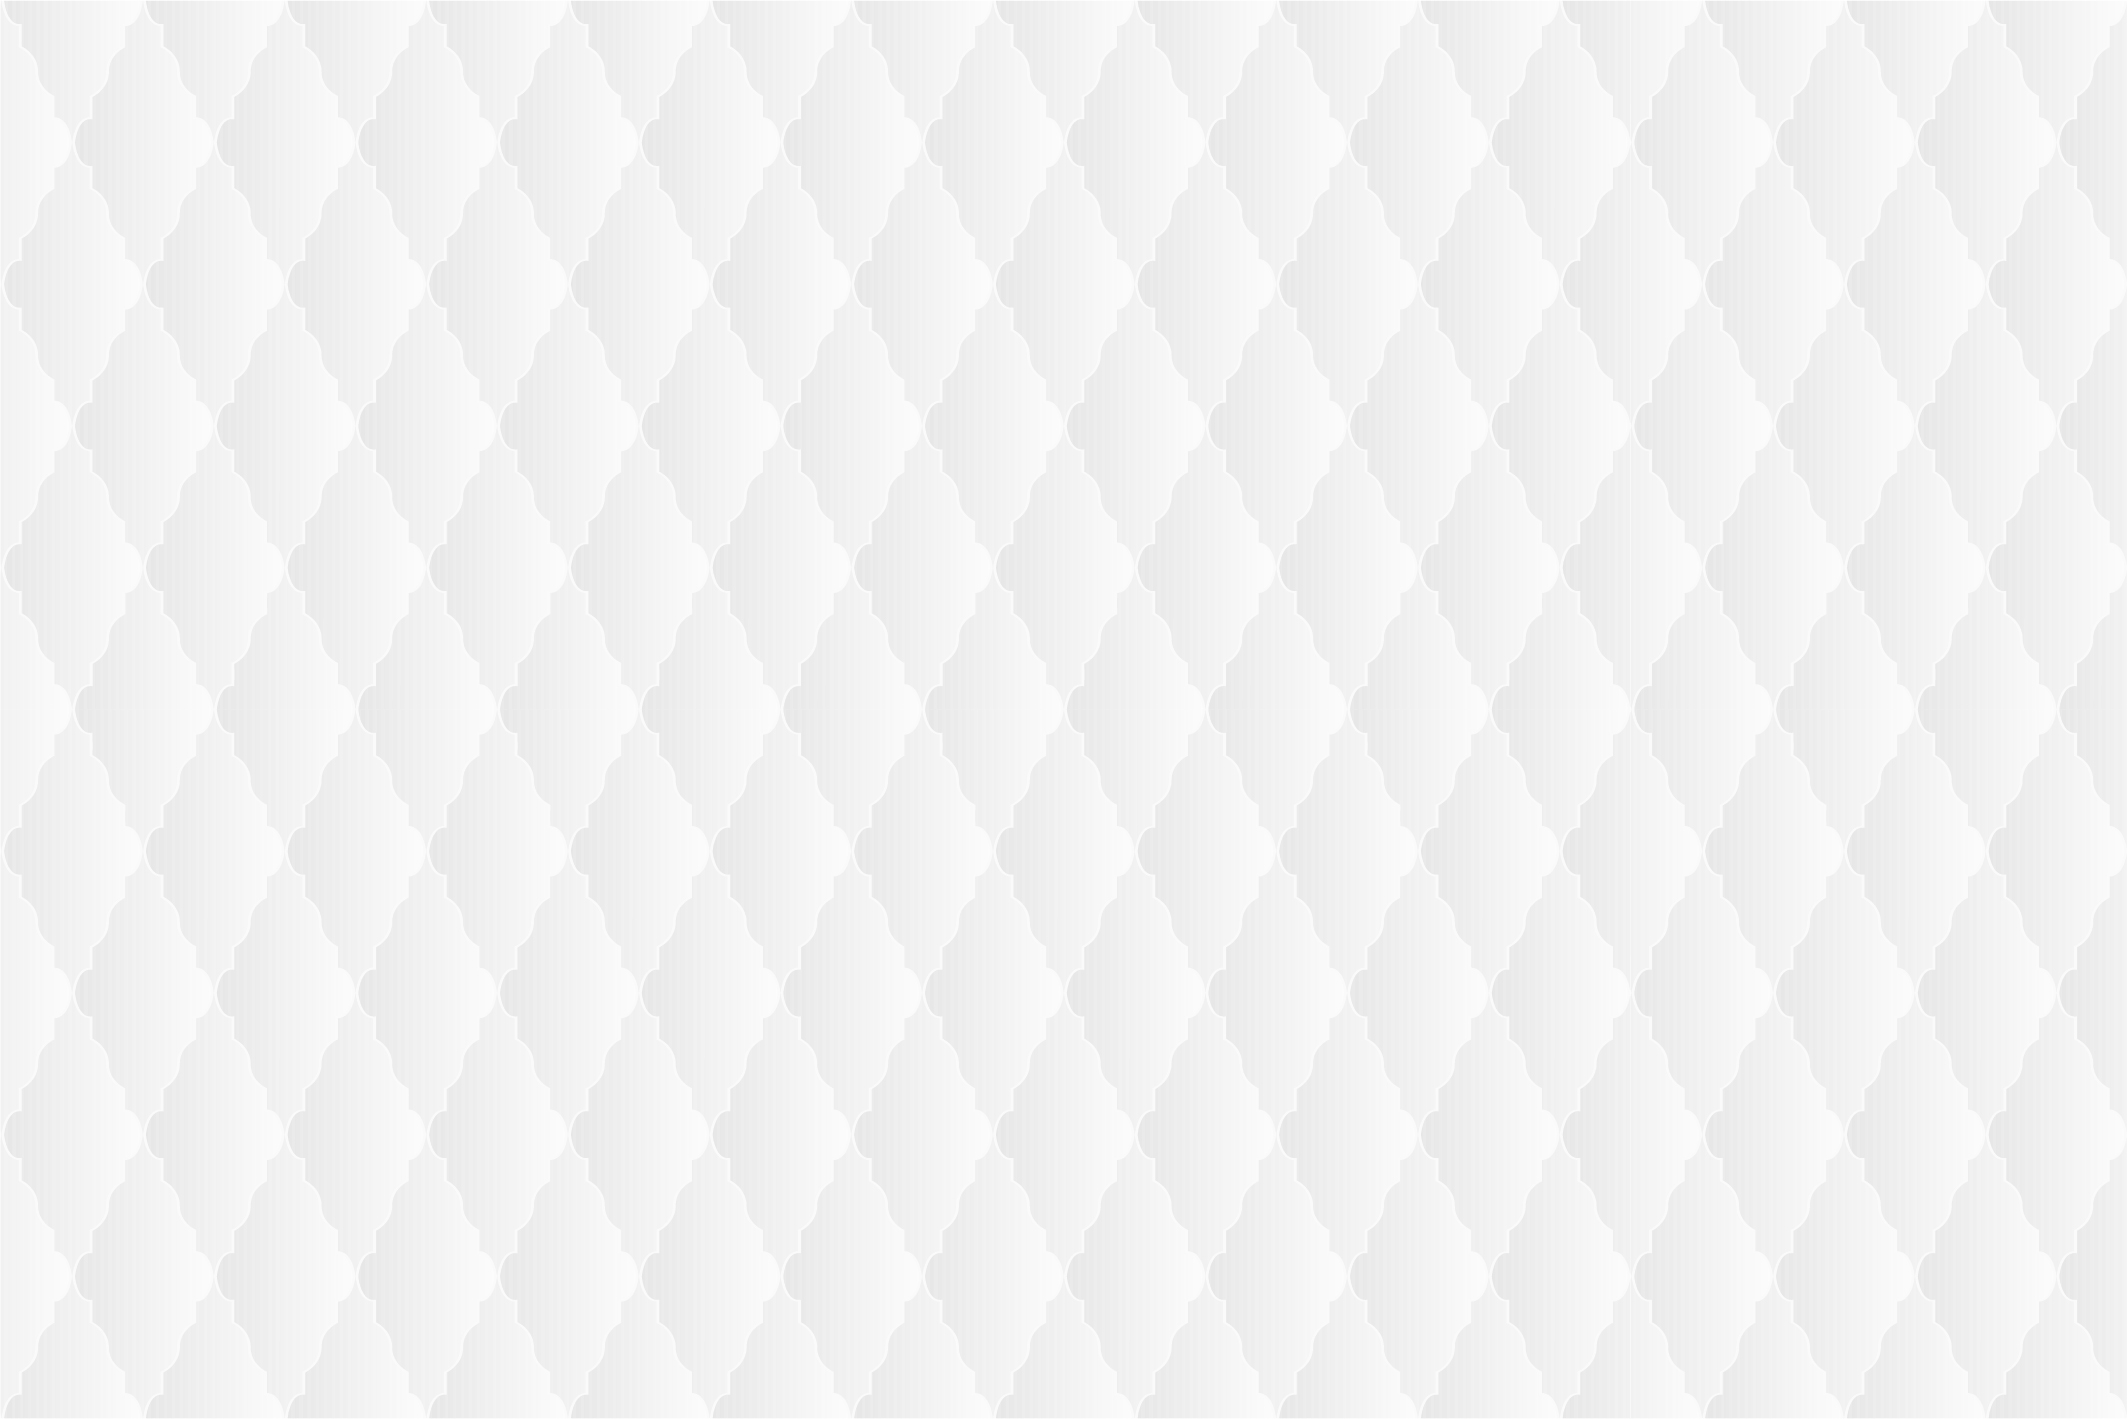 White seamless soft textures. example image 9